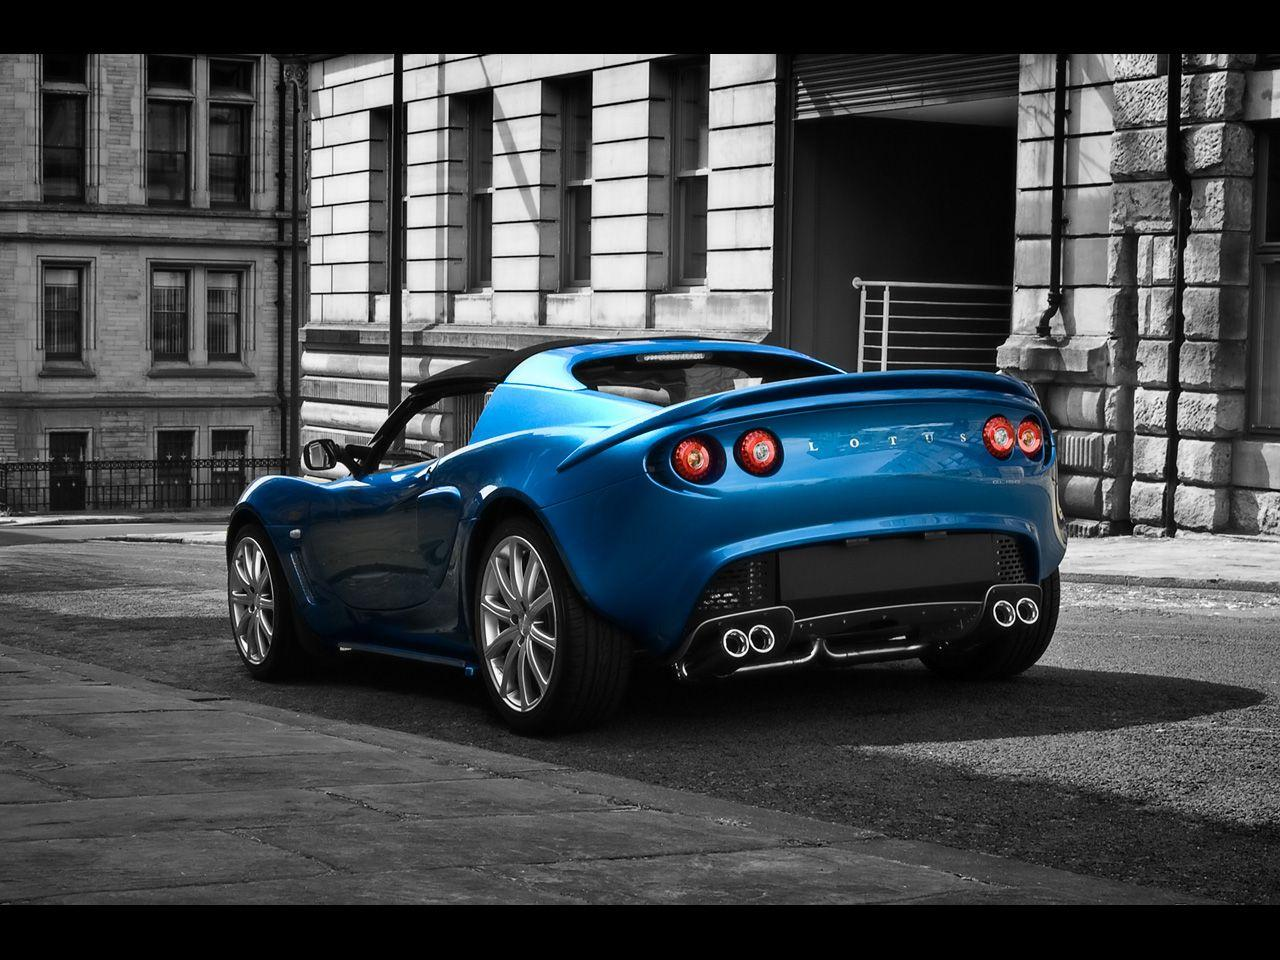 lotus elise - beauty | Cars to Drool Over | Pinterest | Lotus ...